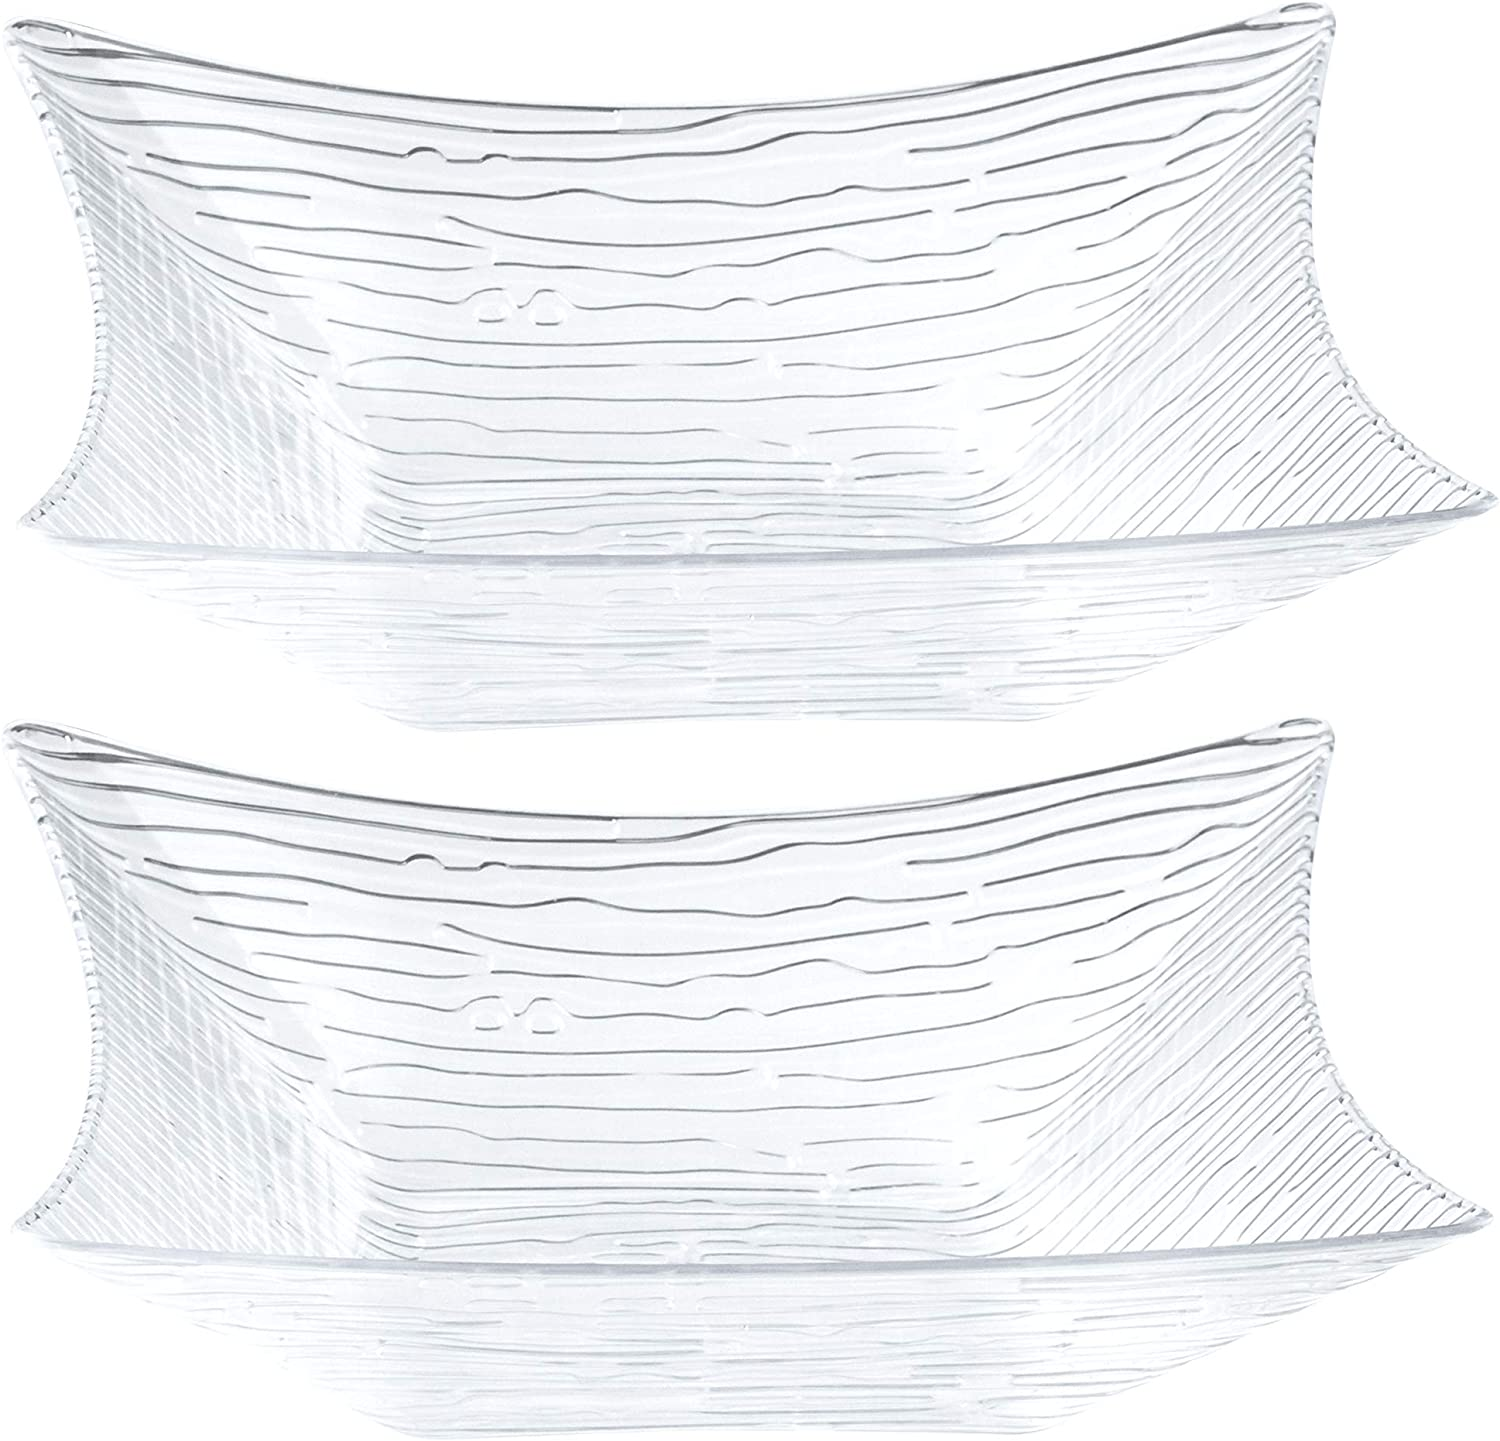 Plasticpro Square Ranking TOP18 Clear Texured Serving Bowls Max 83% OFF Snack for Party